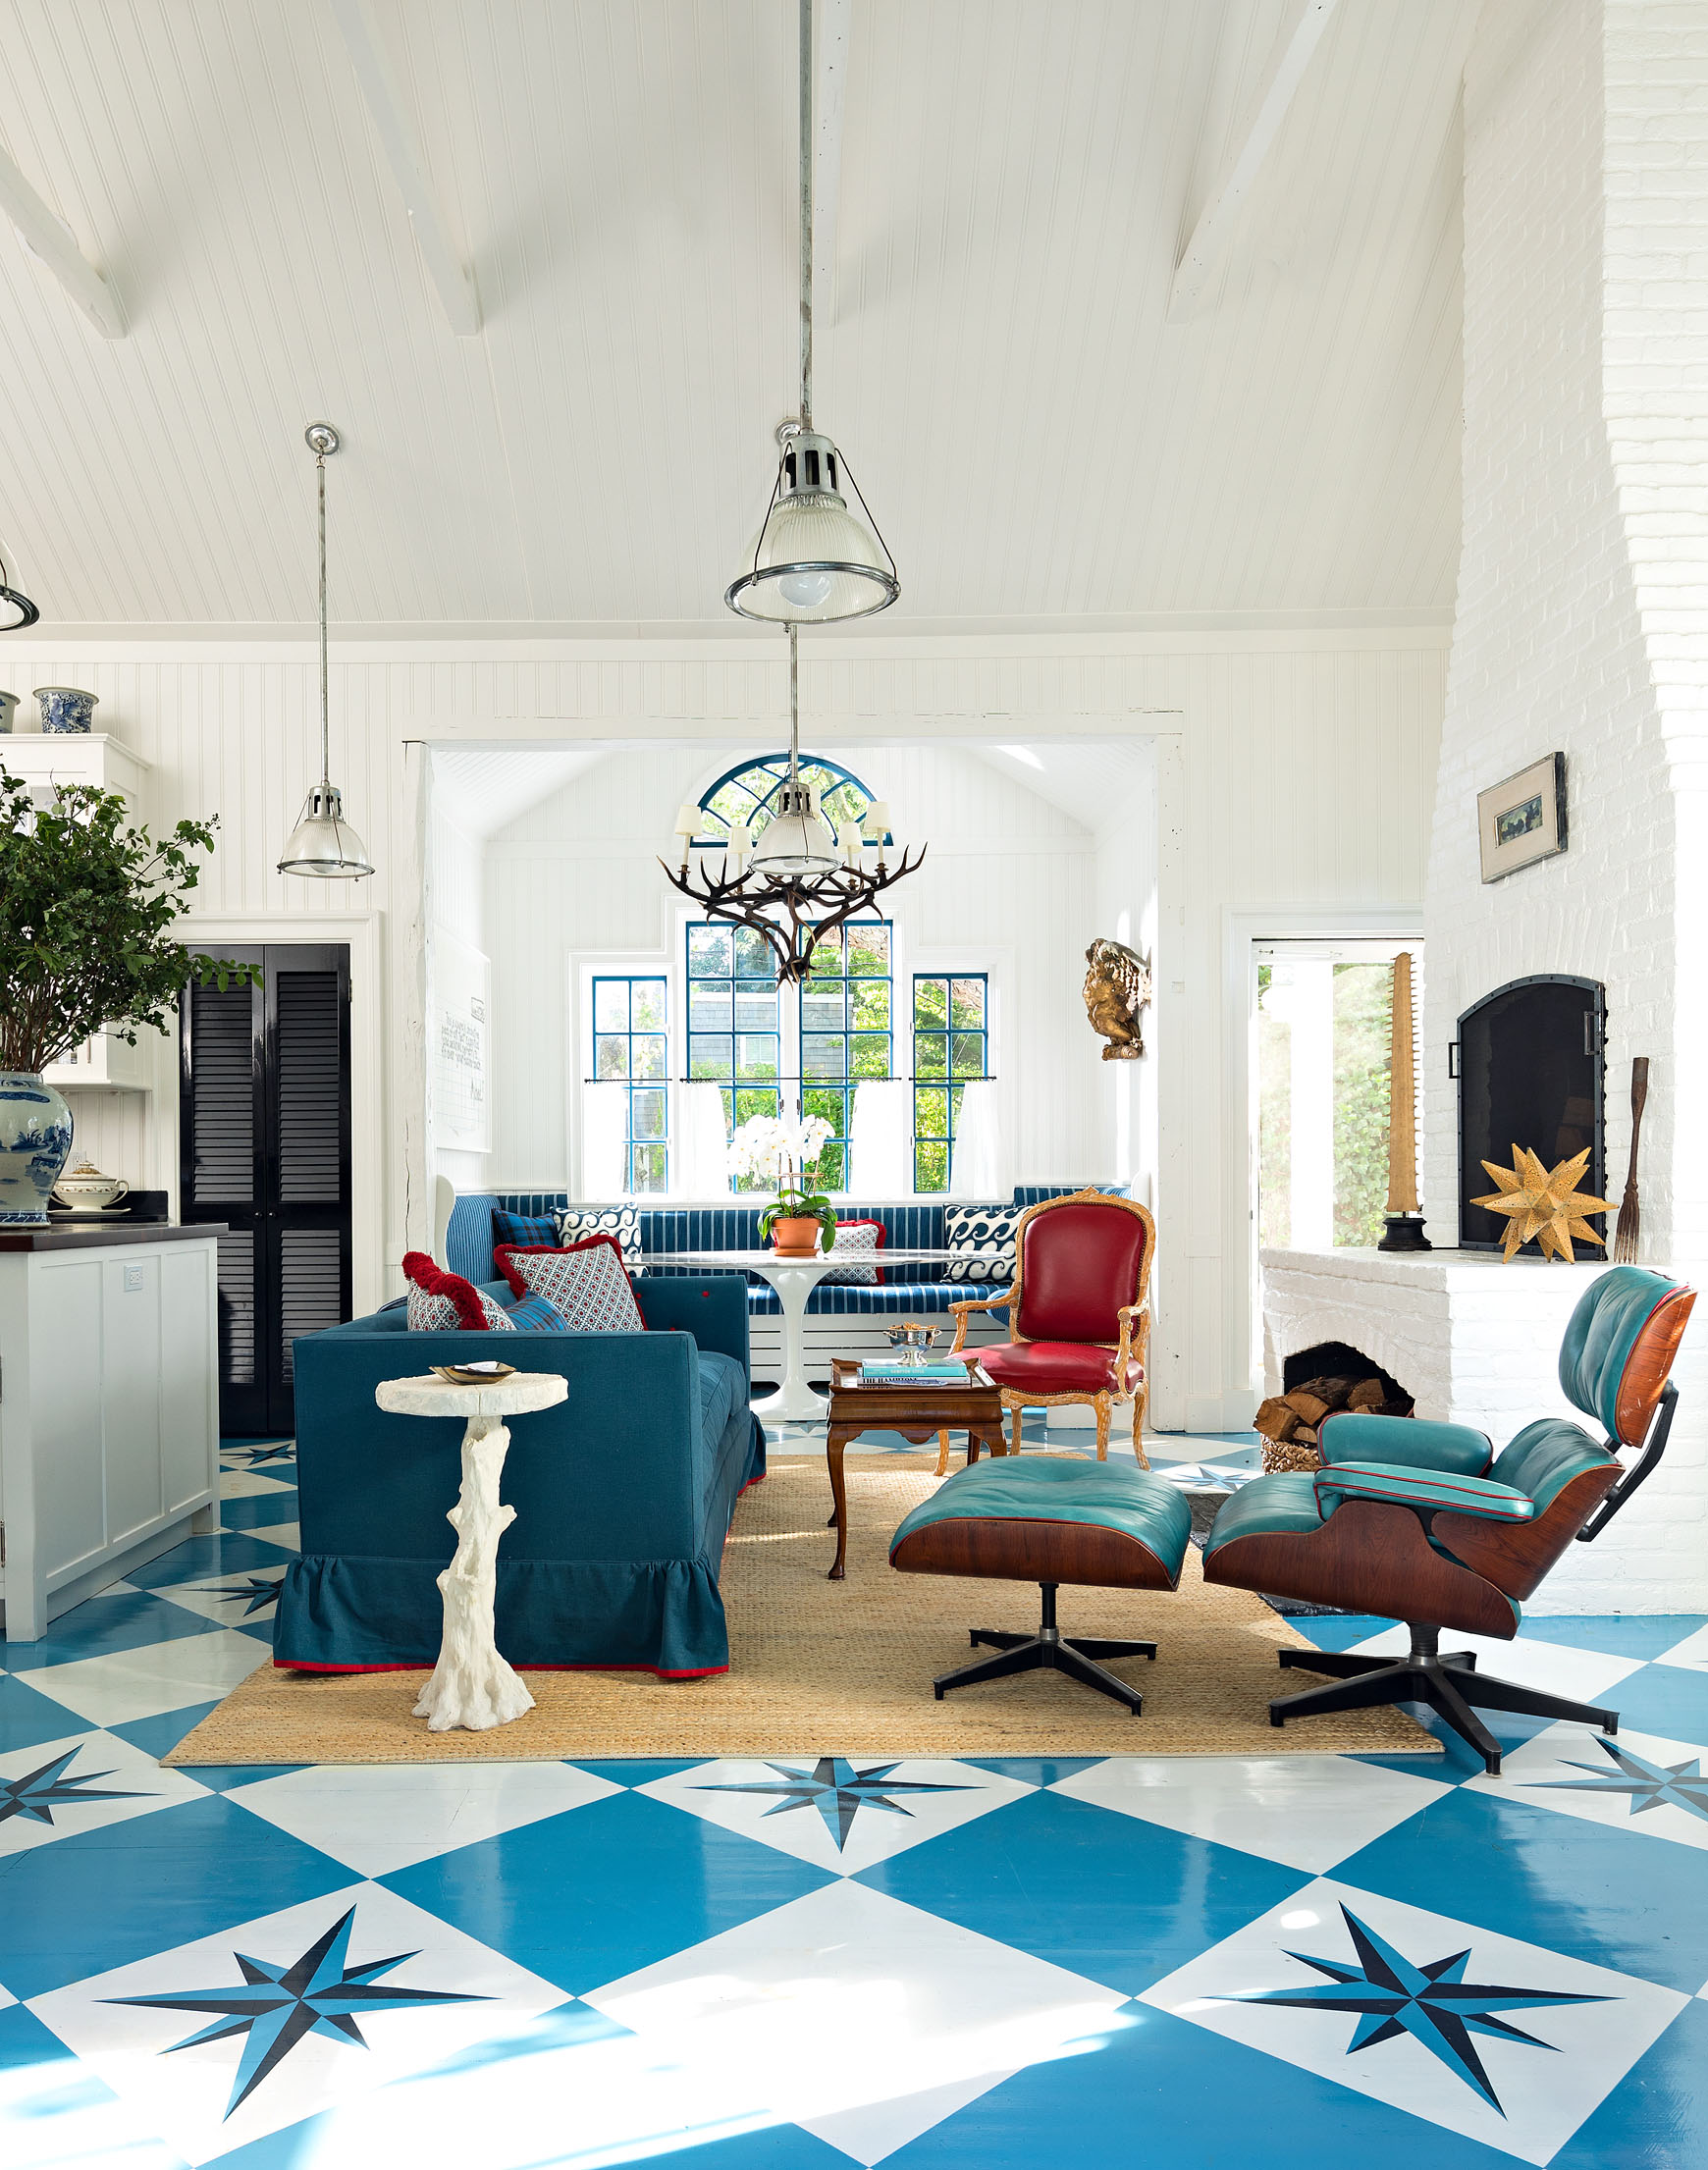 Blue and white painted checkerboard floors with compass stars in a Sag Harbor home decorated by Nick Olsen